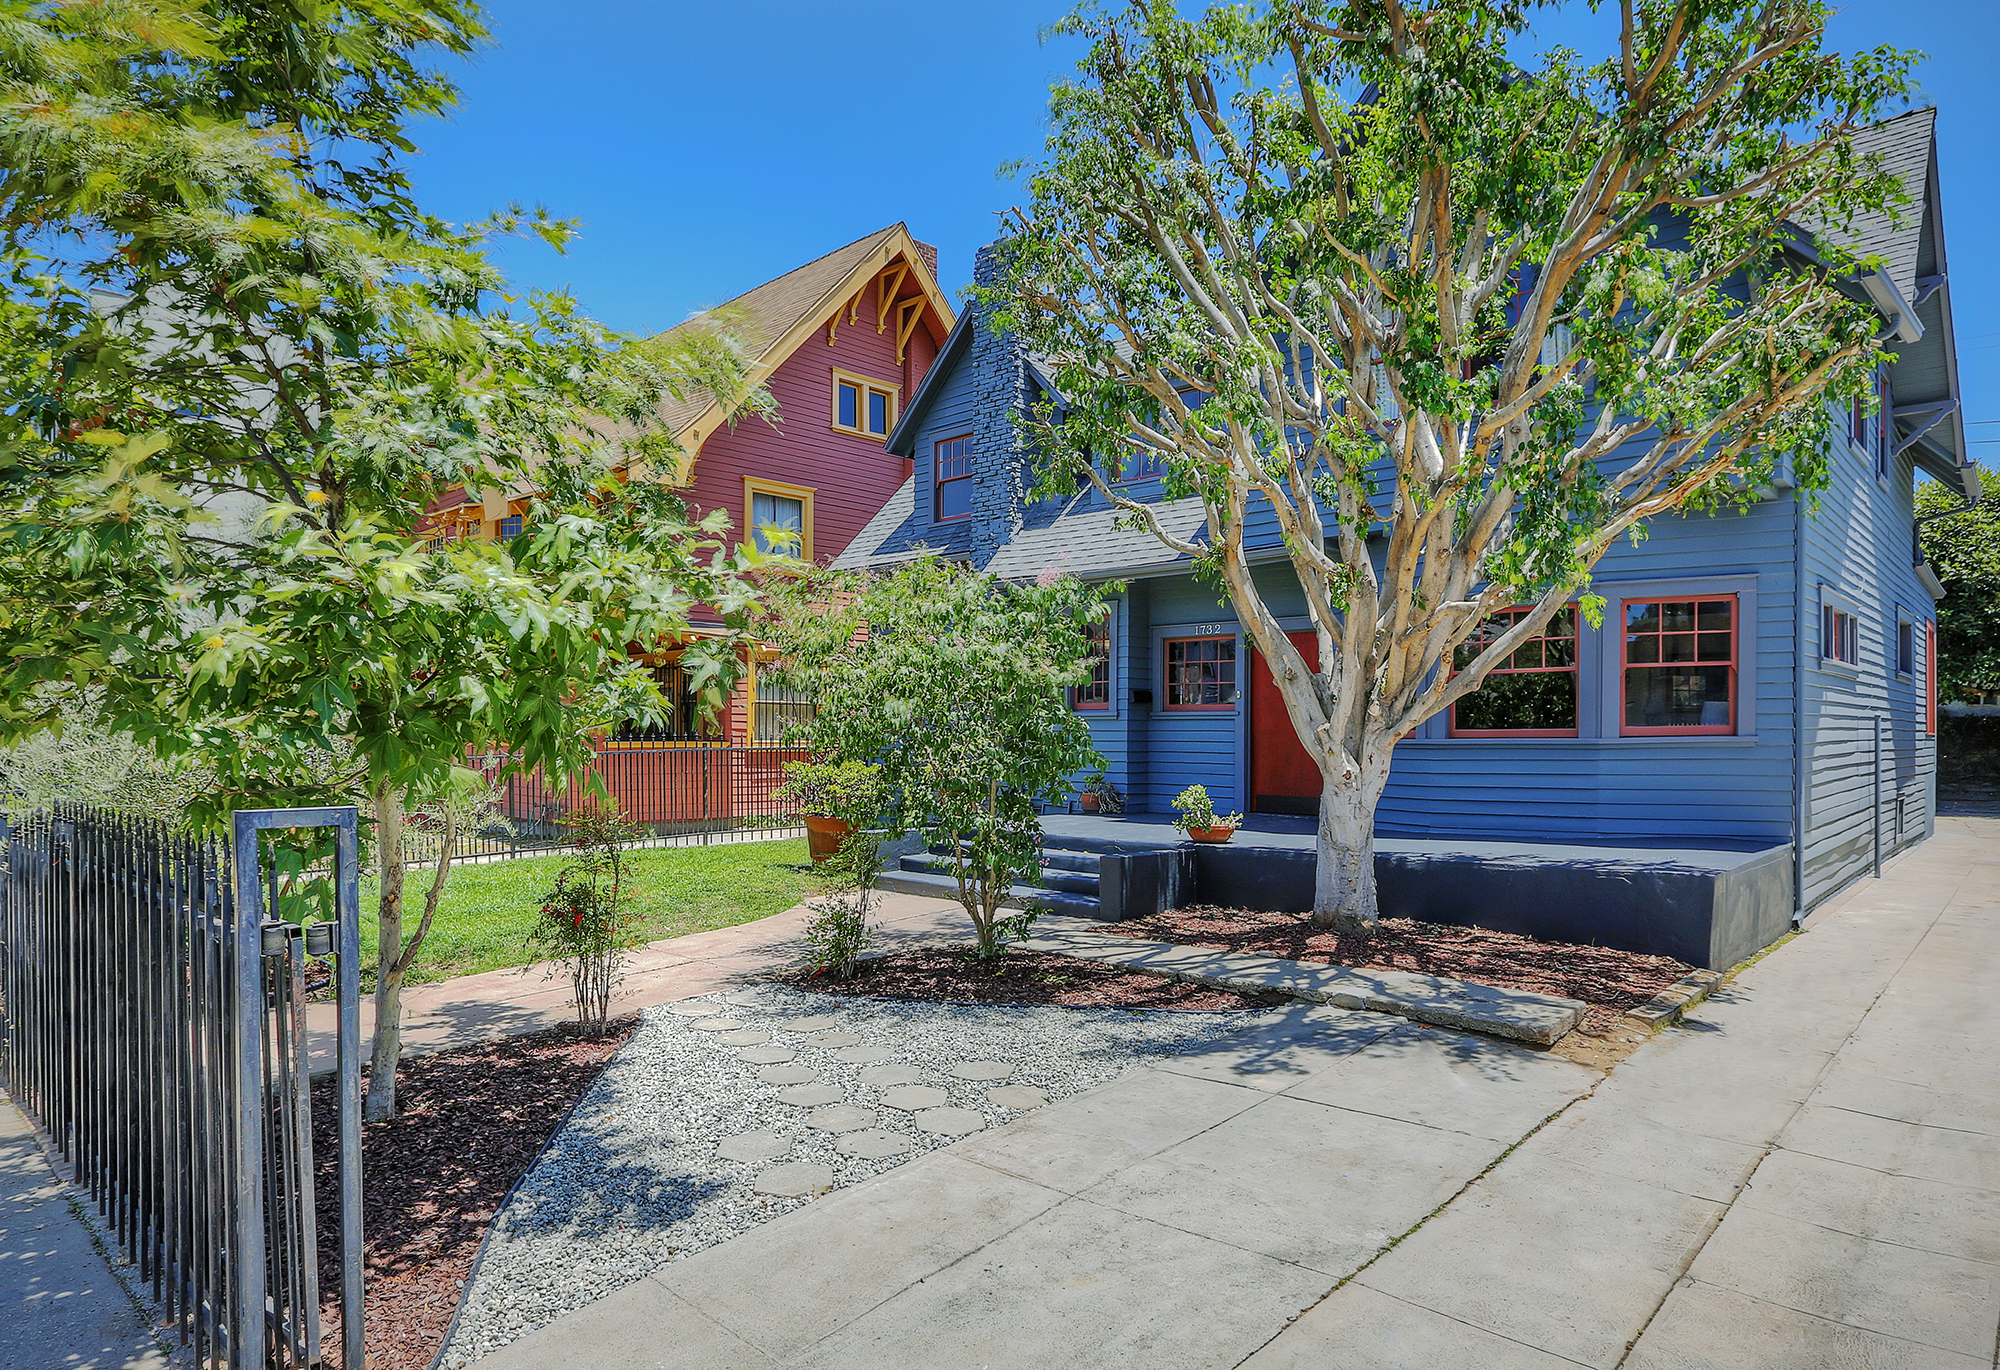 With its ideal central location and an abundance of stunning turn-of-the-century homes, Harvard Heights is the hottest up-and-coming neighborhood in L.A. Here is your chance to be ahead of the next real estate wave!